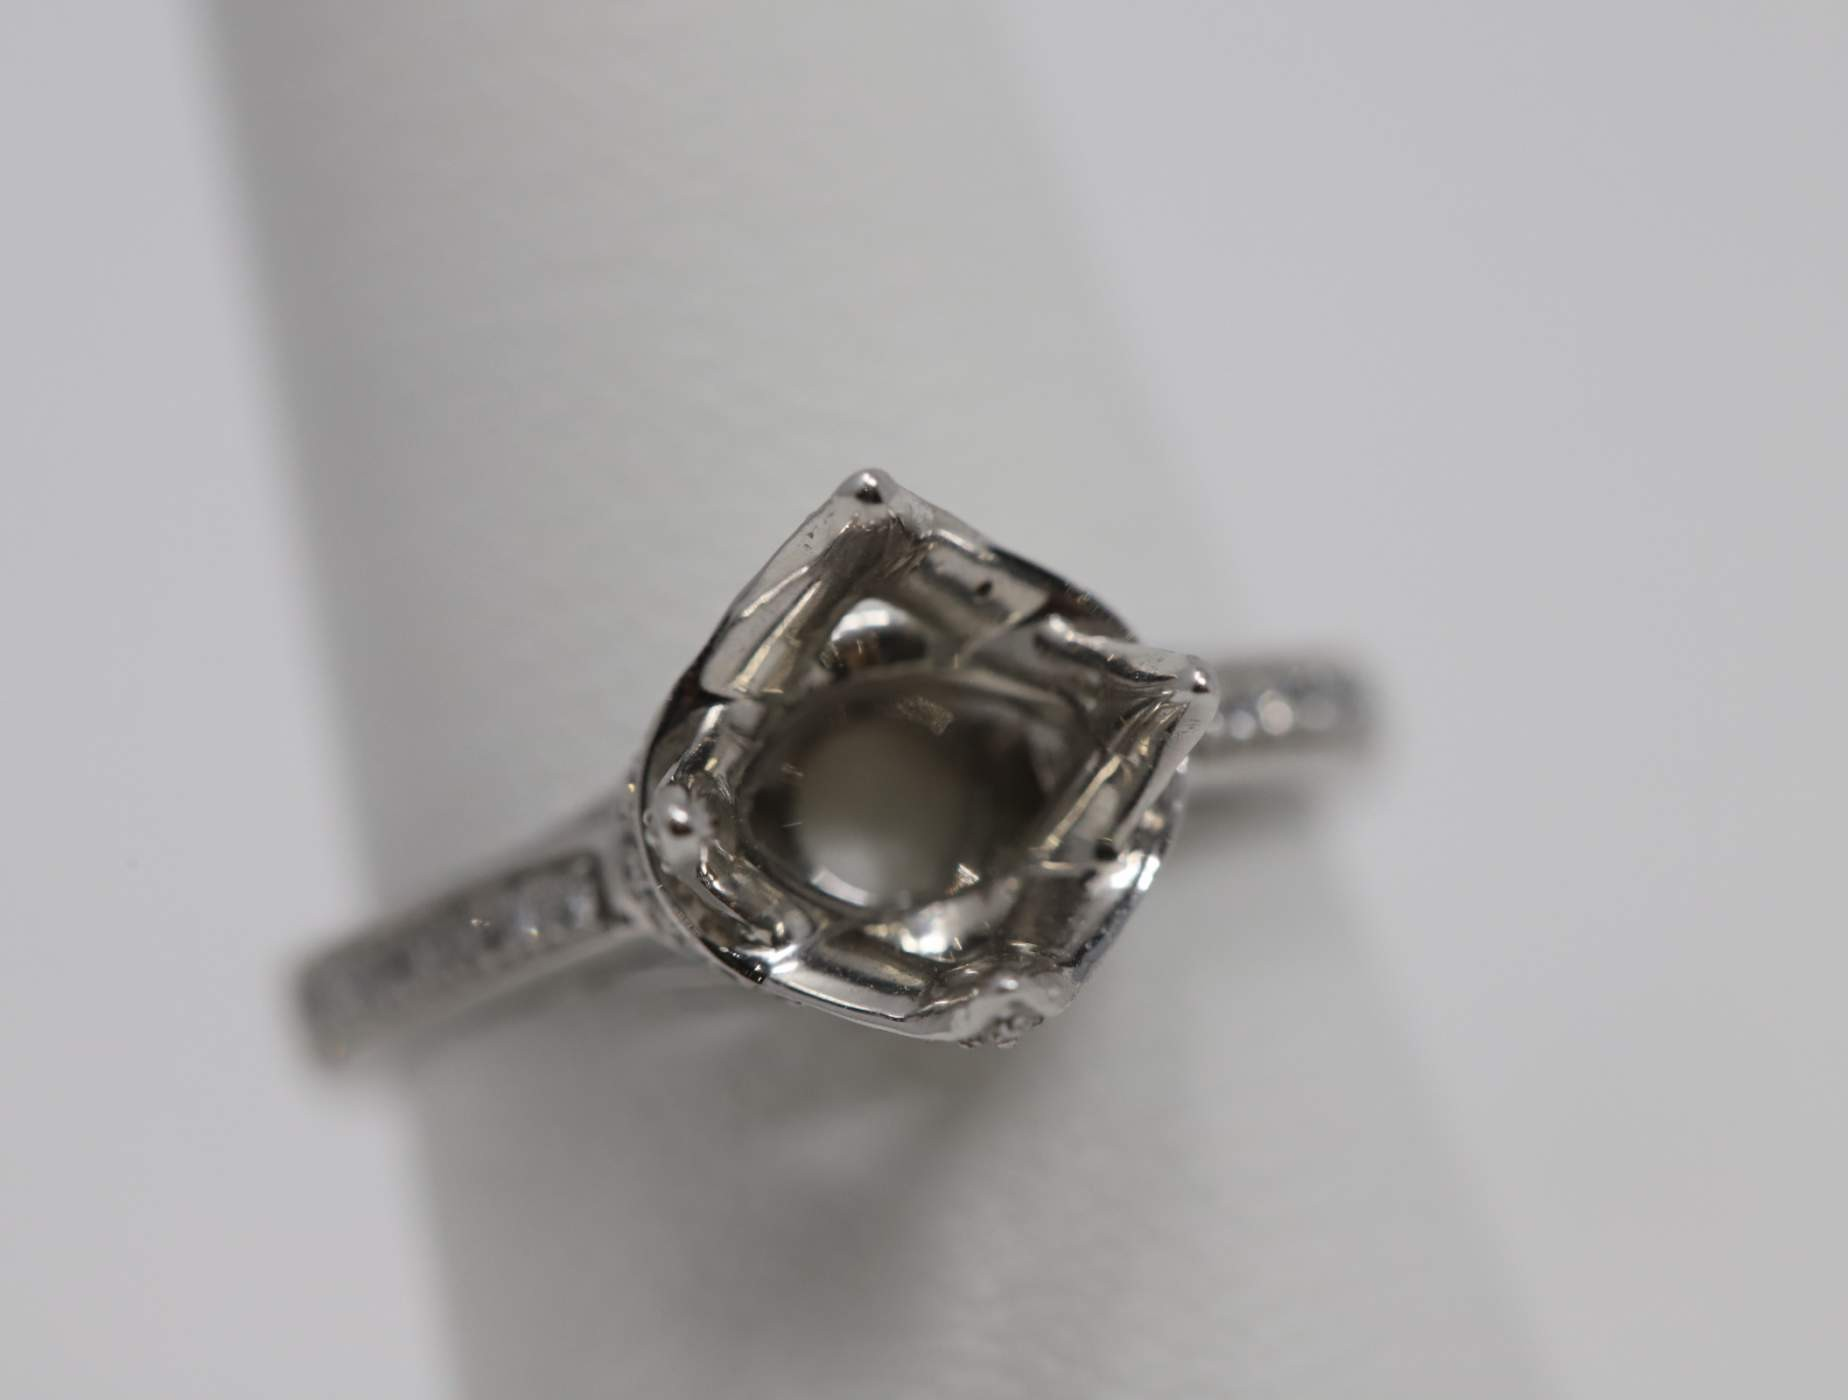 Lady's 18k White Gold (Currently No Major Stone Set In Mtg) Engagement Ring